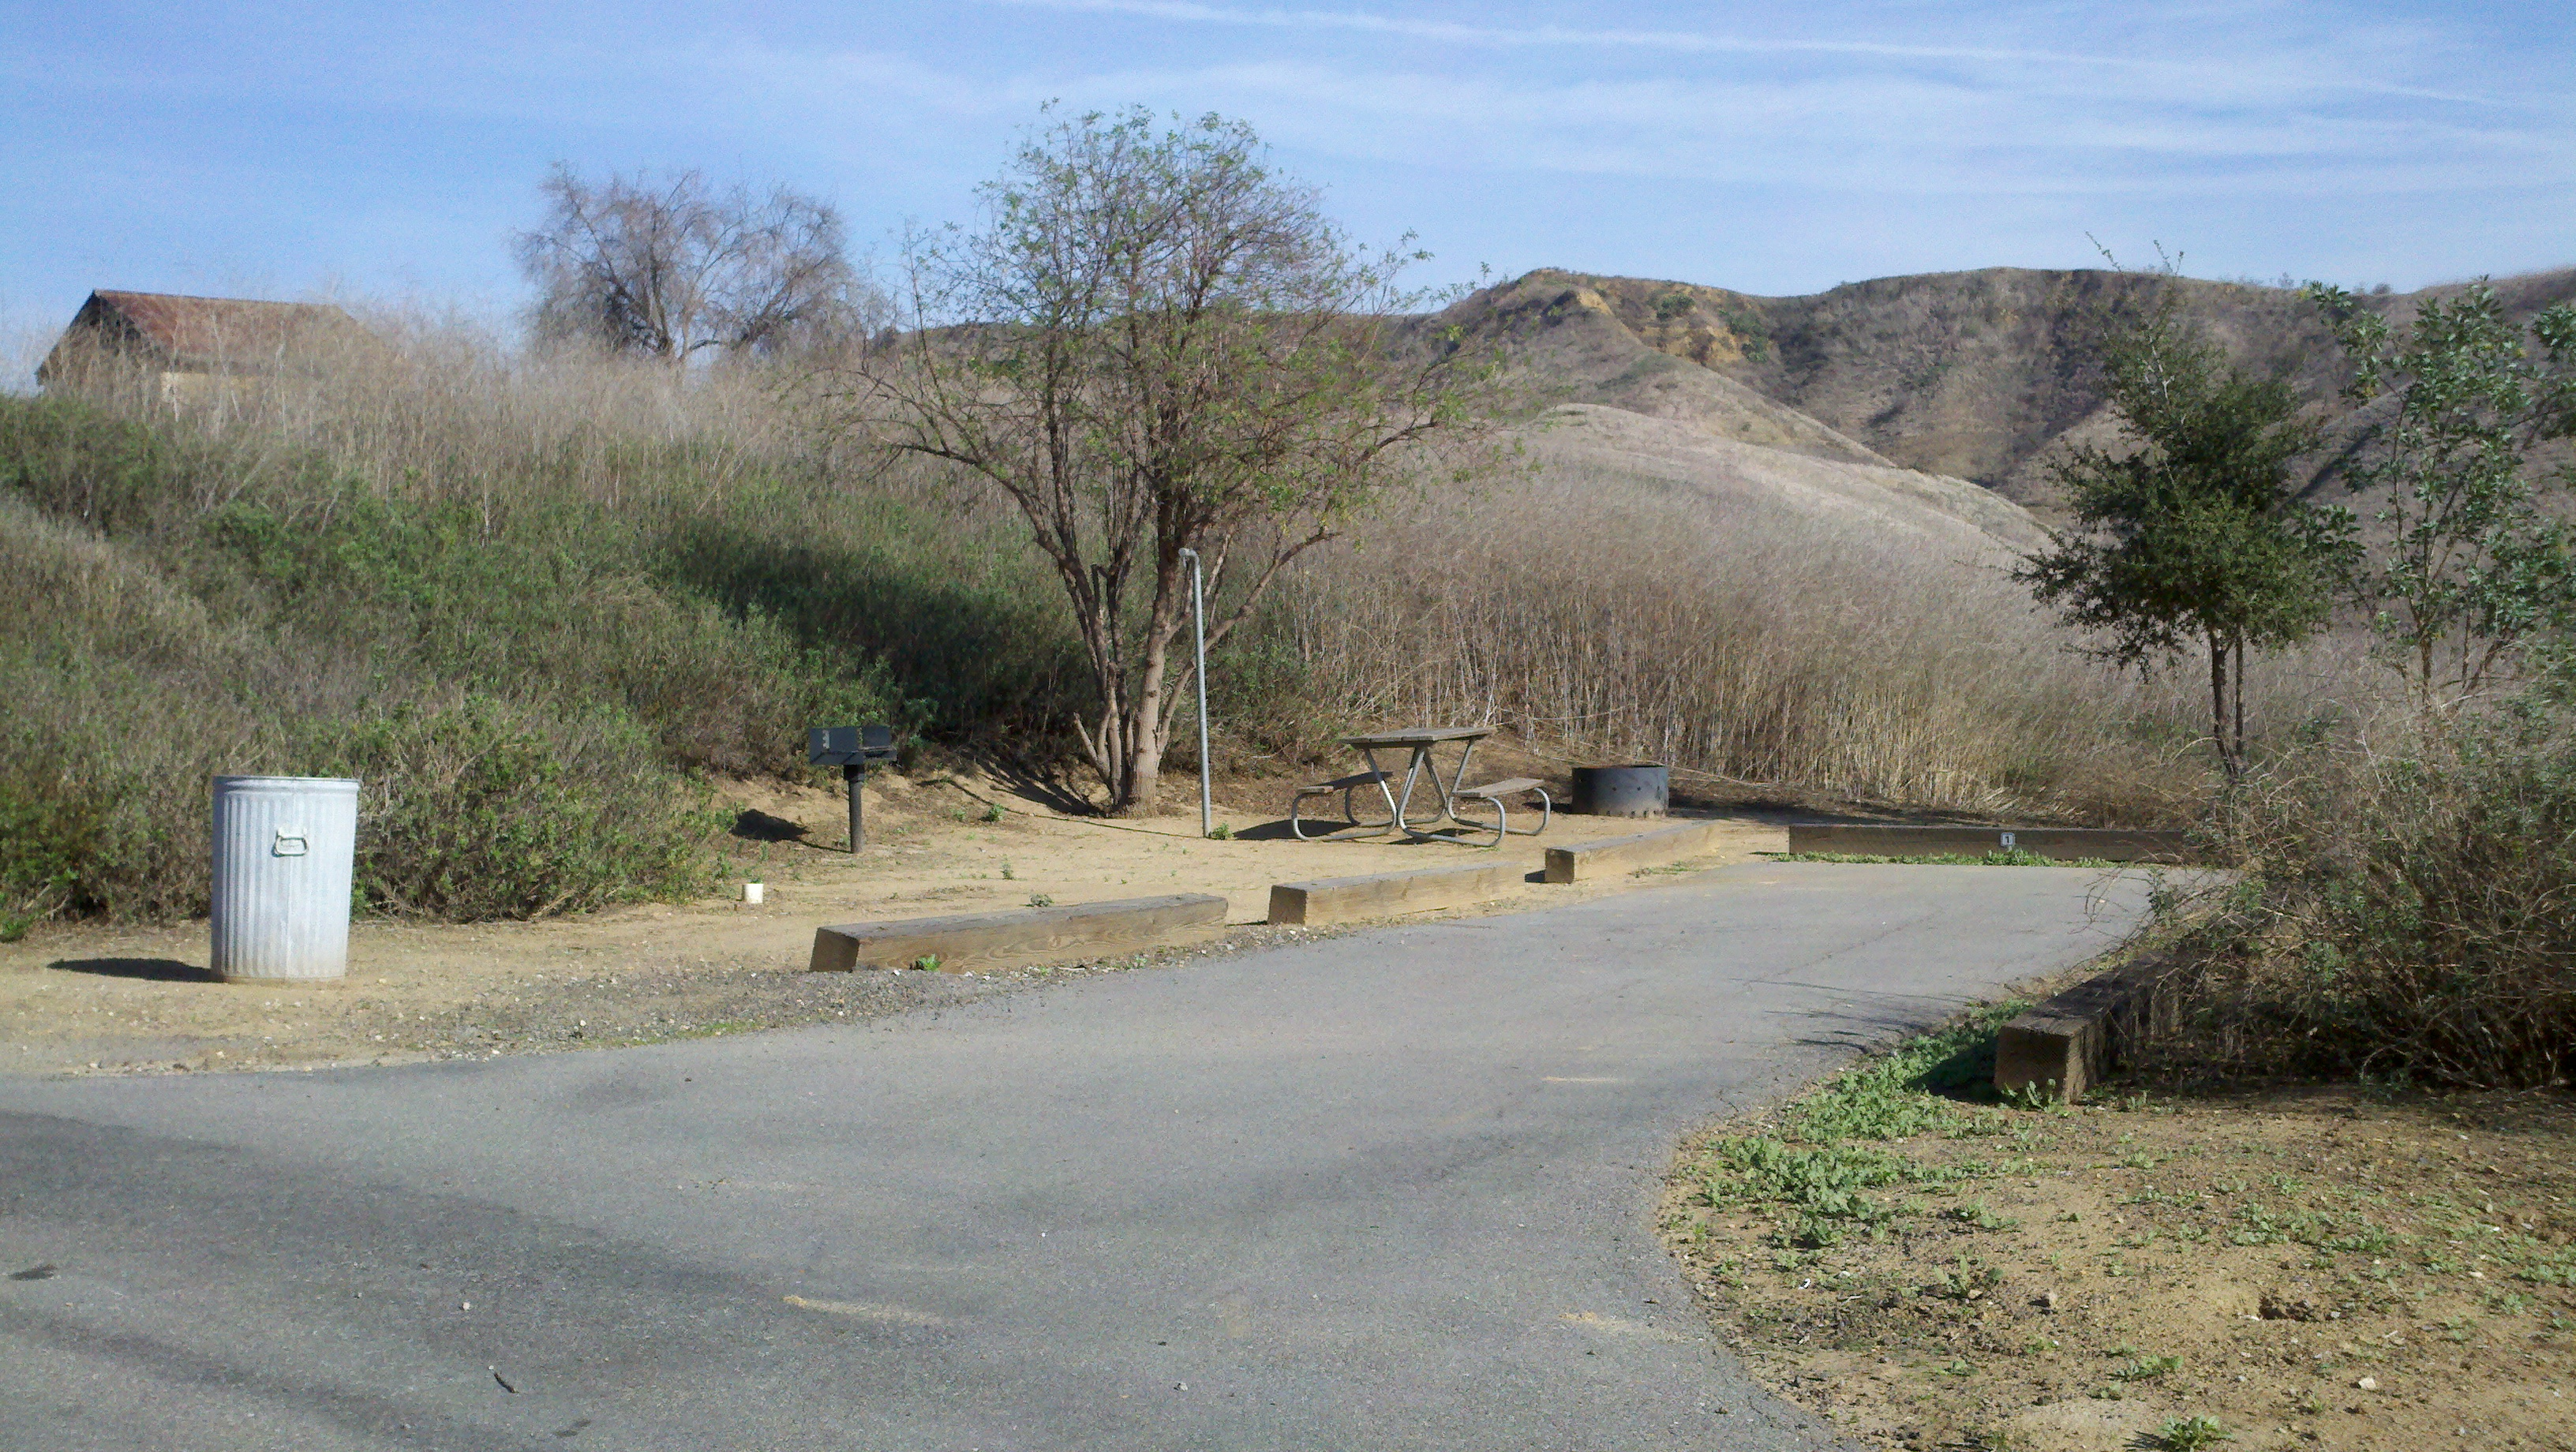 Image from Chino Hills SP